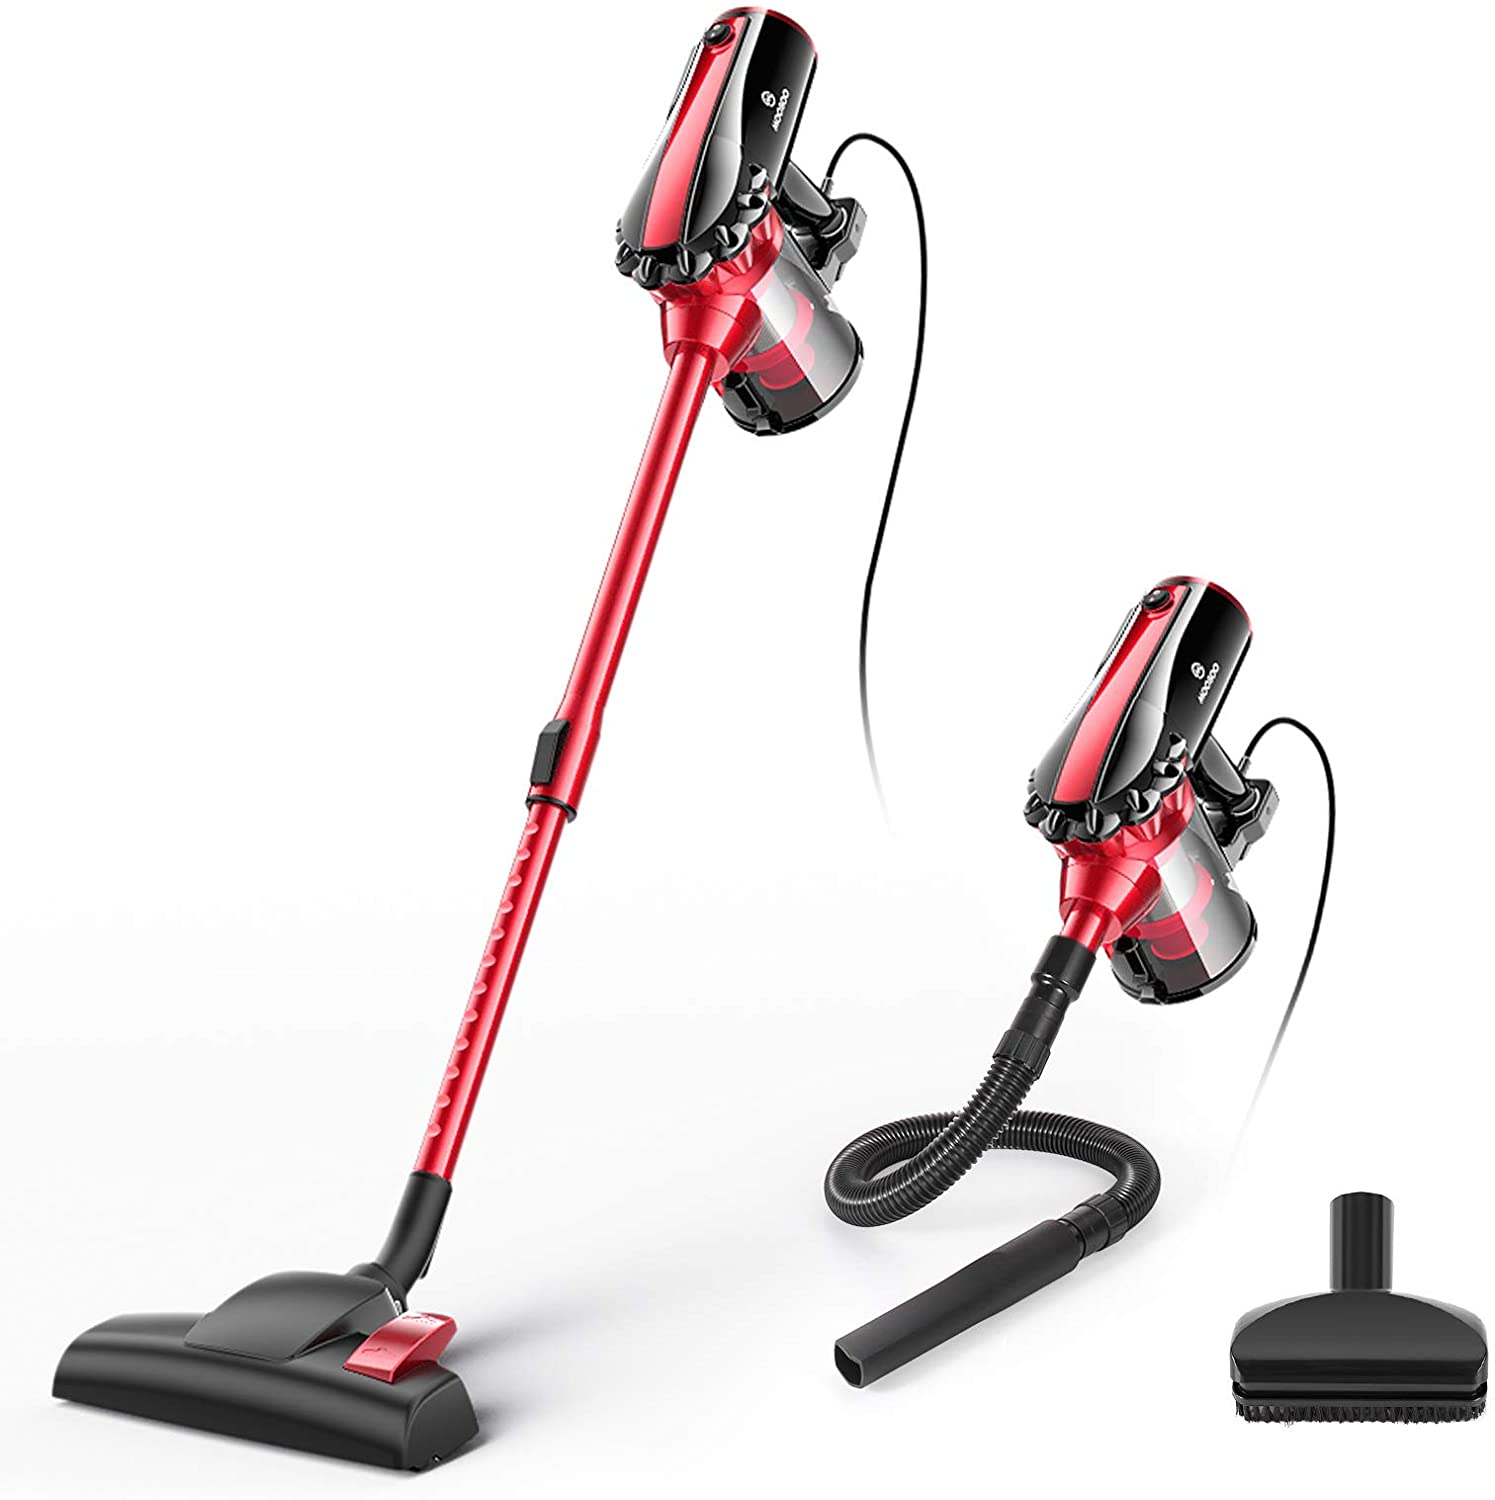 Review of MOOSOO Corded Stick Vacuum for Hard Floor with HEPA Filters,Hose, D600